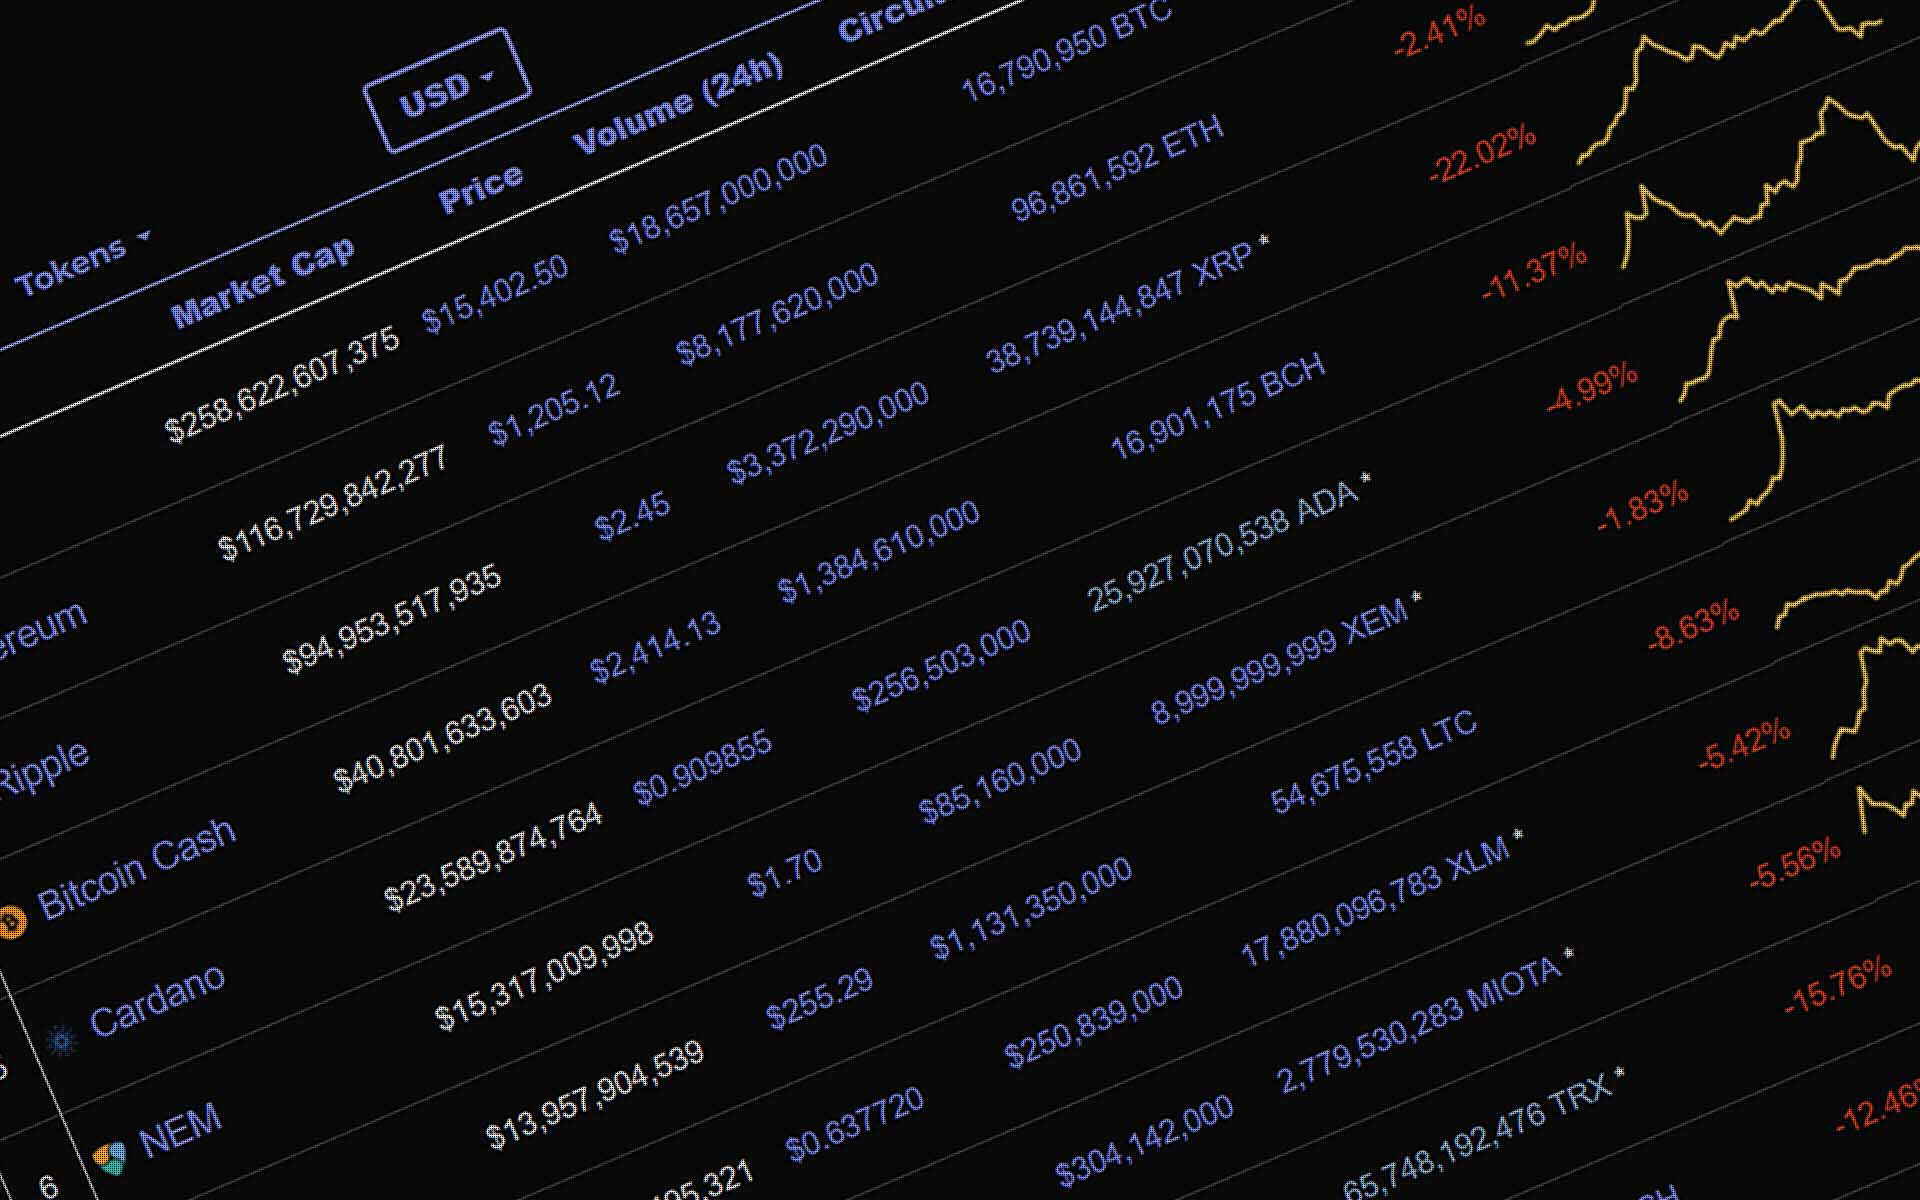 CoinMarketCap Cuts South Korean Exchanges Without Warning, Panic Selling Ensues